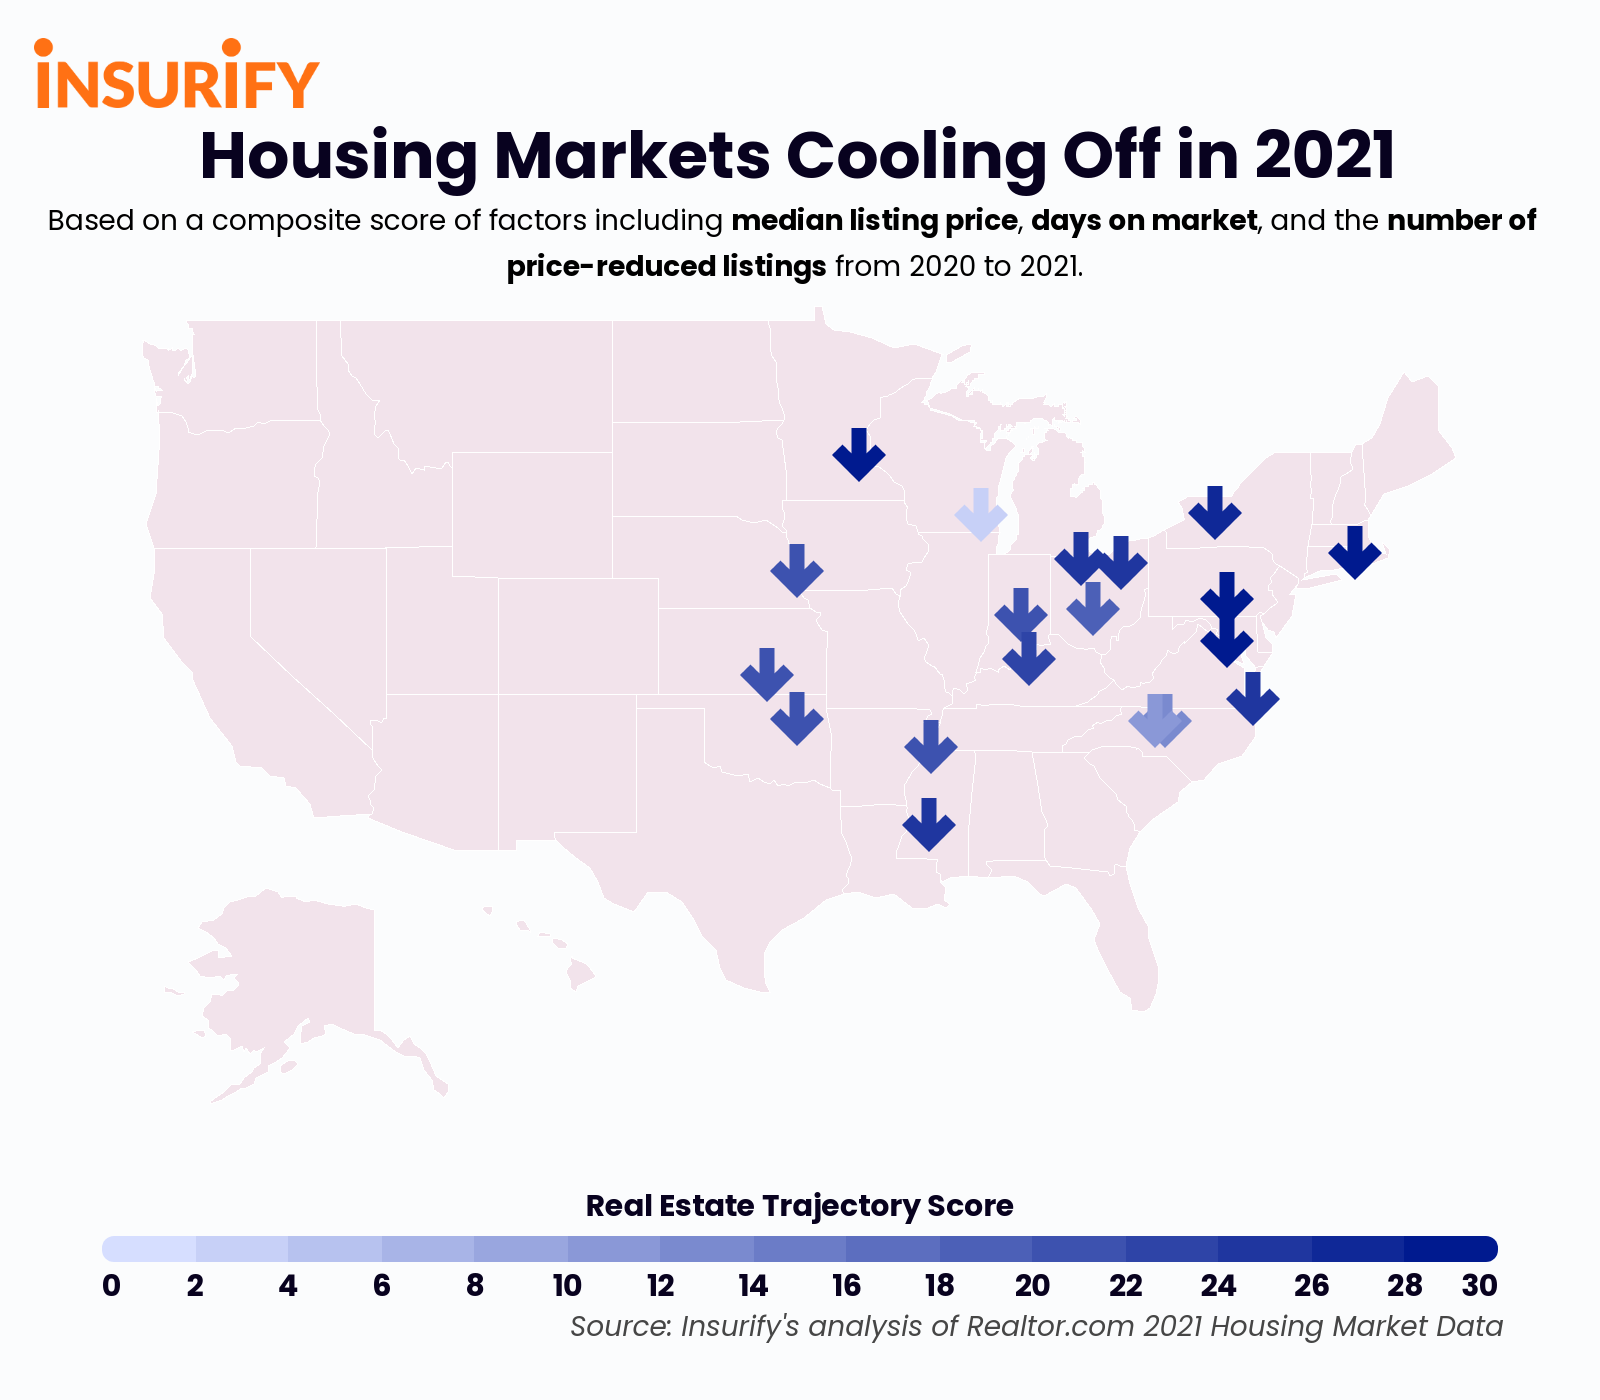 An icon map showing 20 cities where the real estate market is returning to pre-pandemic levels in 2021.